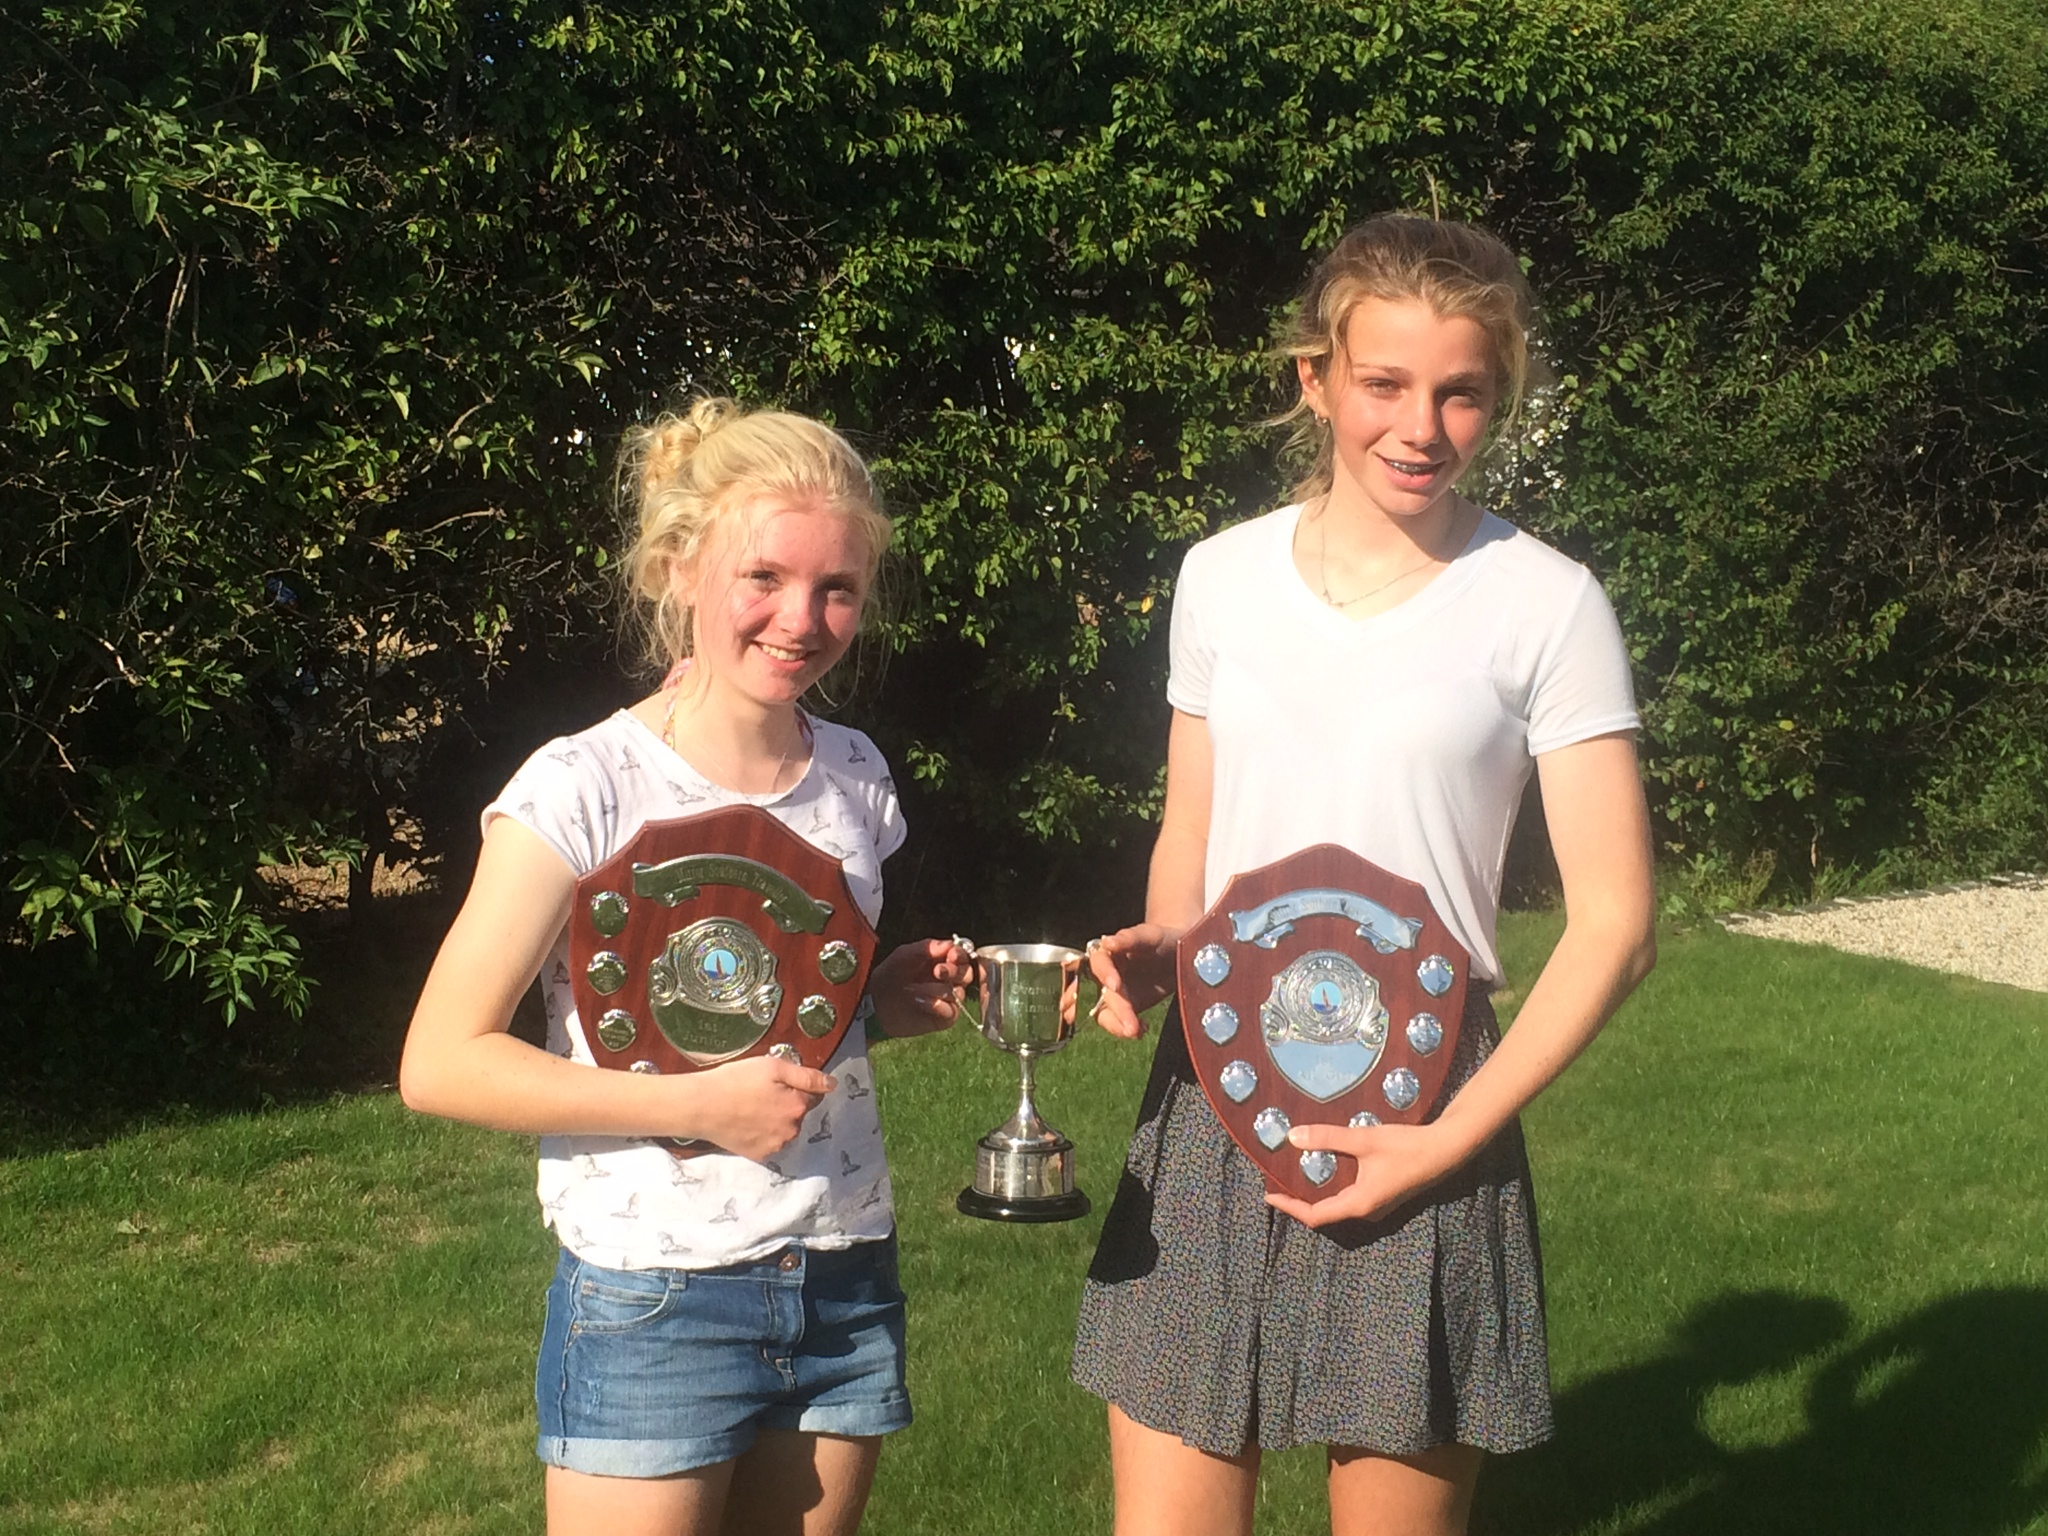 Two girls holding their trophies - a cup and two shields